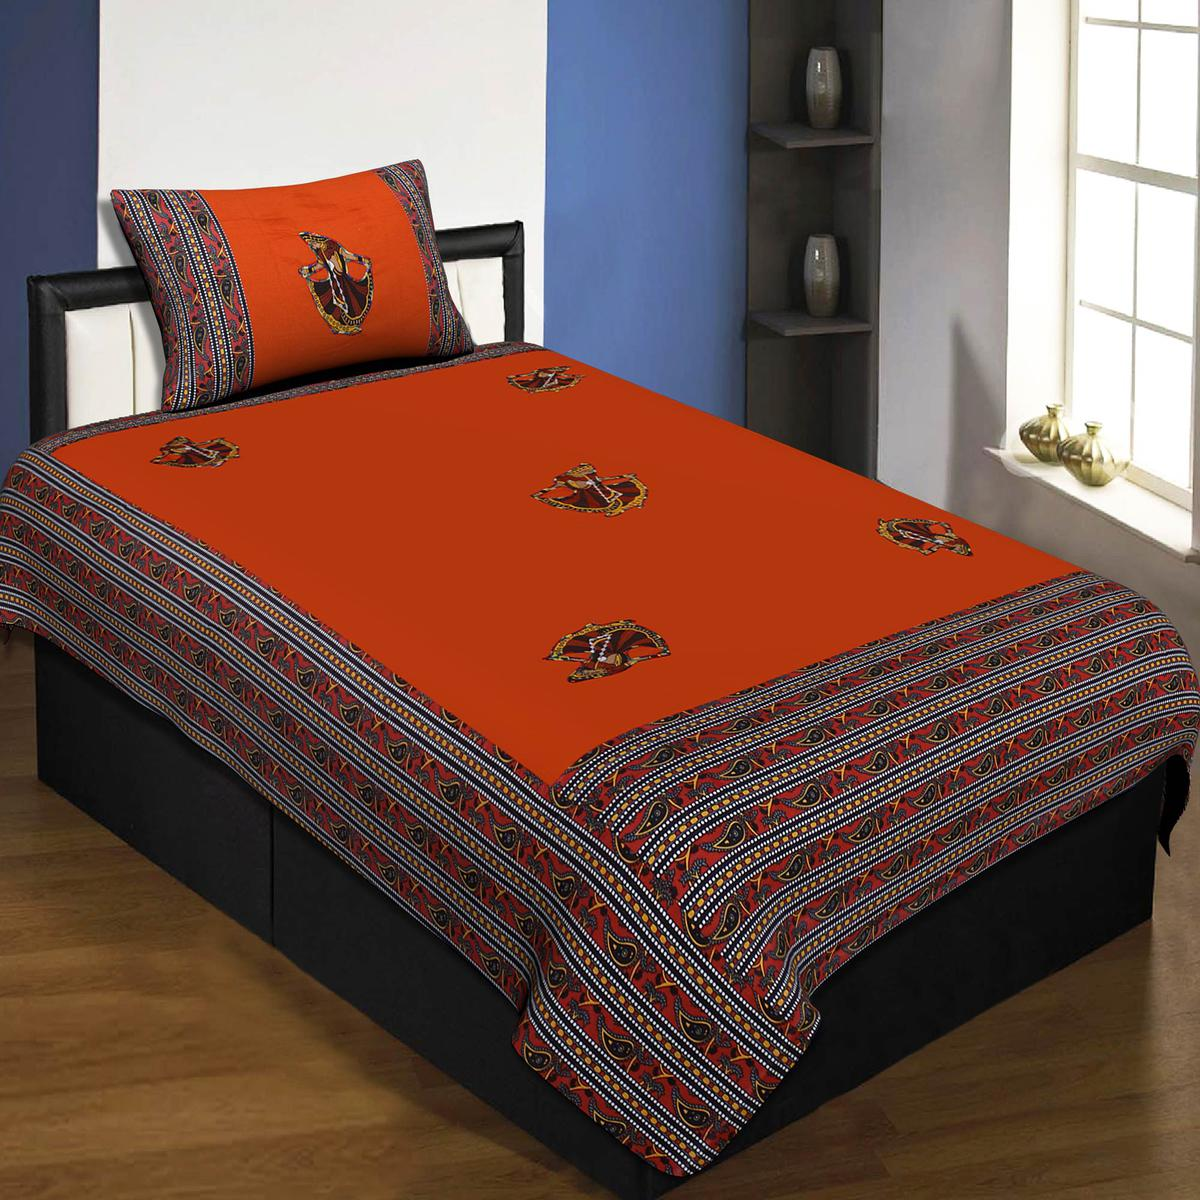 Jaipur Fabric Applique Orange Gujri Jaipuri Hand Made Embroidery Patch Work Single Bedsheet With 1 Pillow Cover